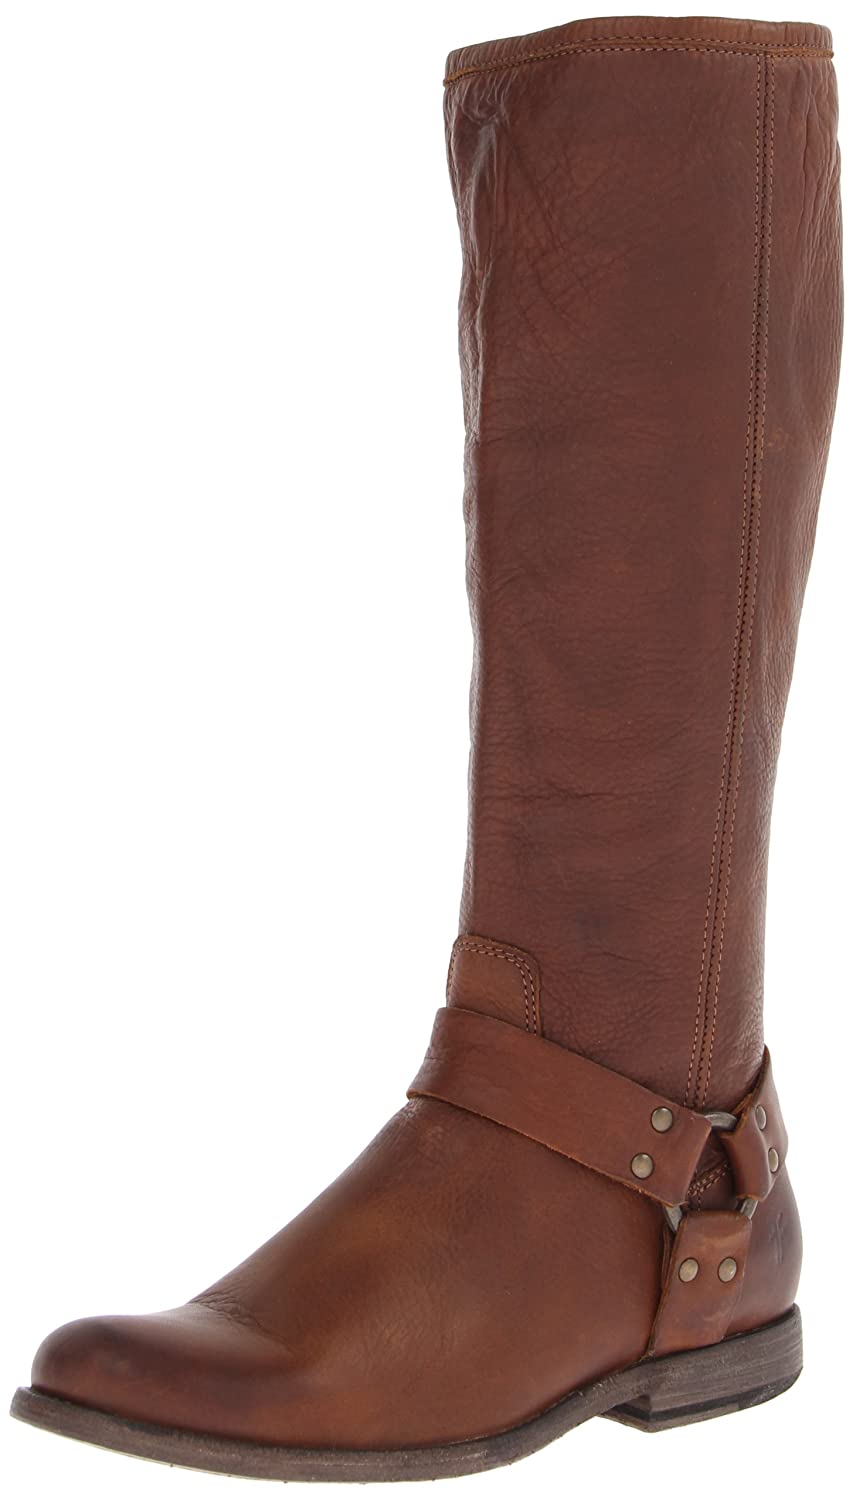 FRYE Women's Phillip Harness Tall Boot B004W1SOUQ 7 B(M) US|Cognac Soft Vintage Leather-76850